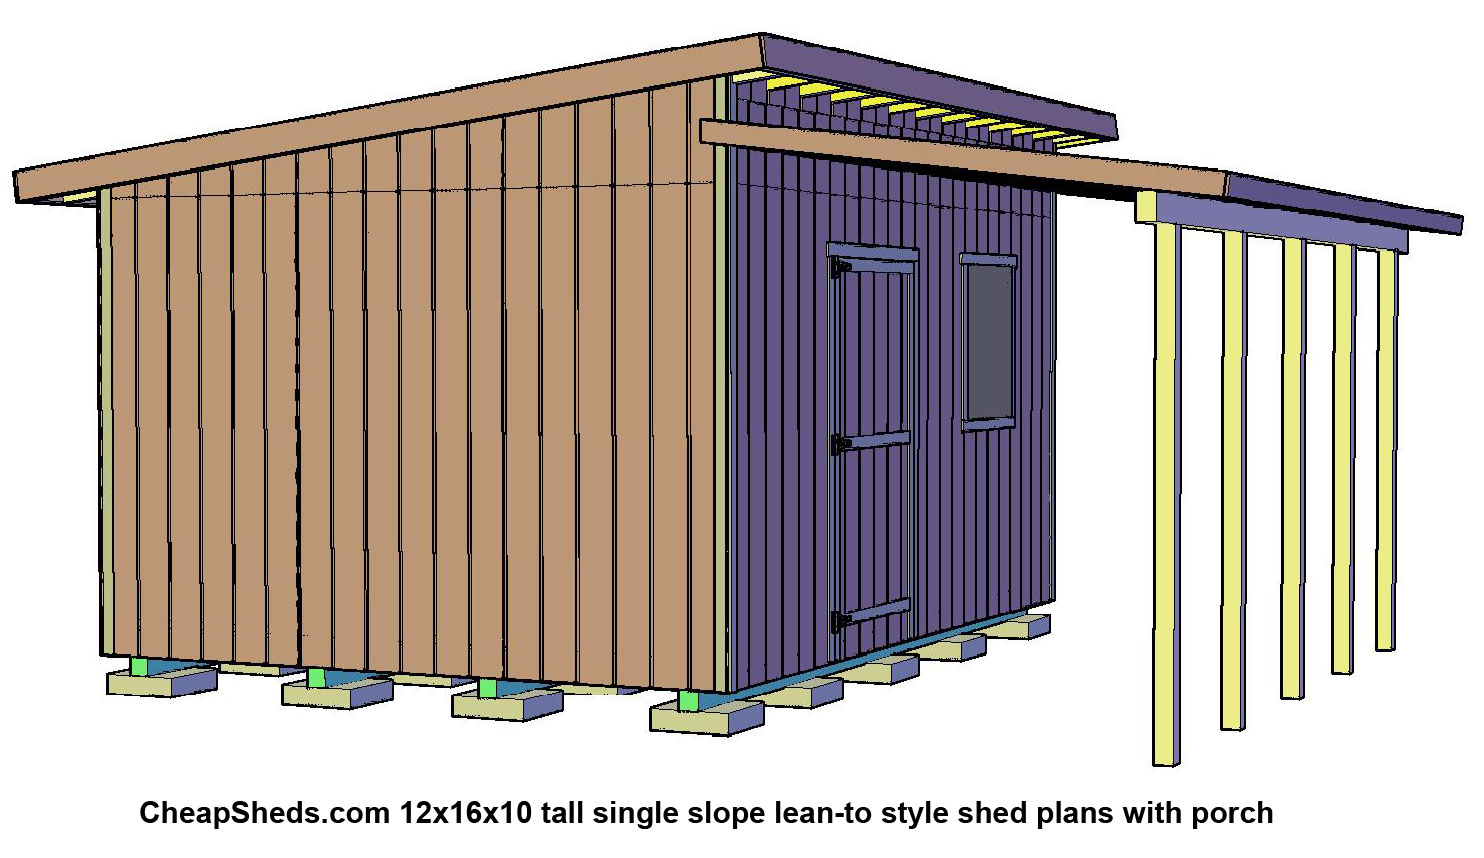 All con how to build a large shed for Lean to style house plans